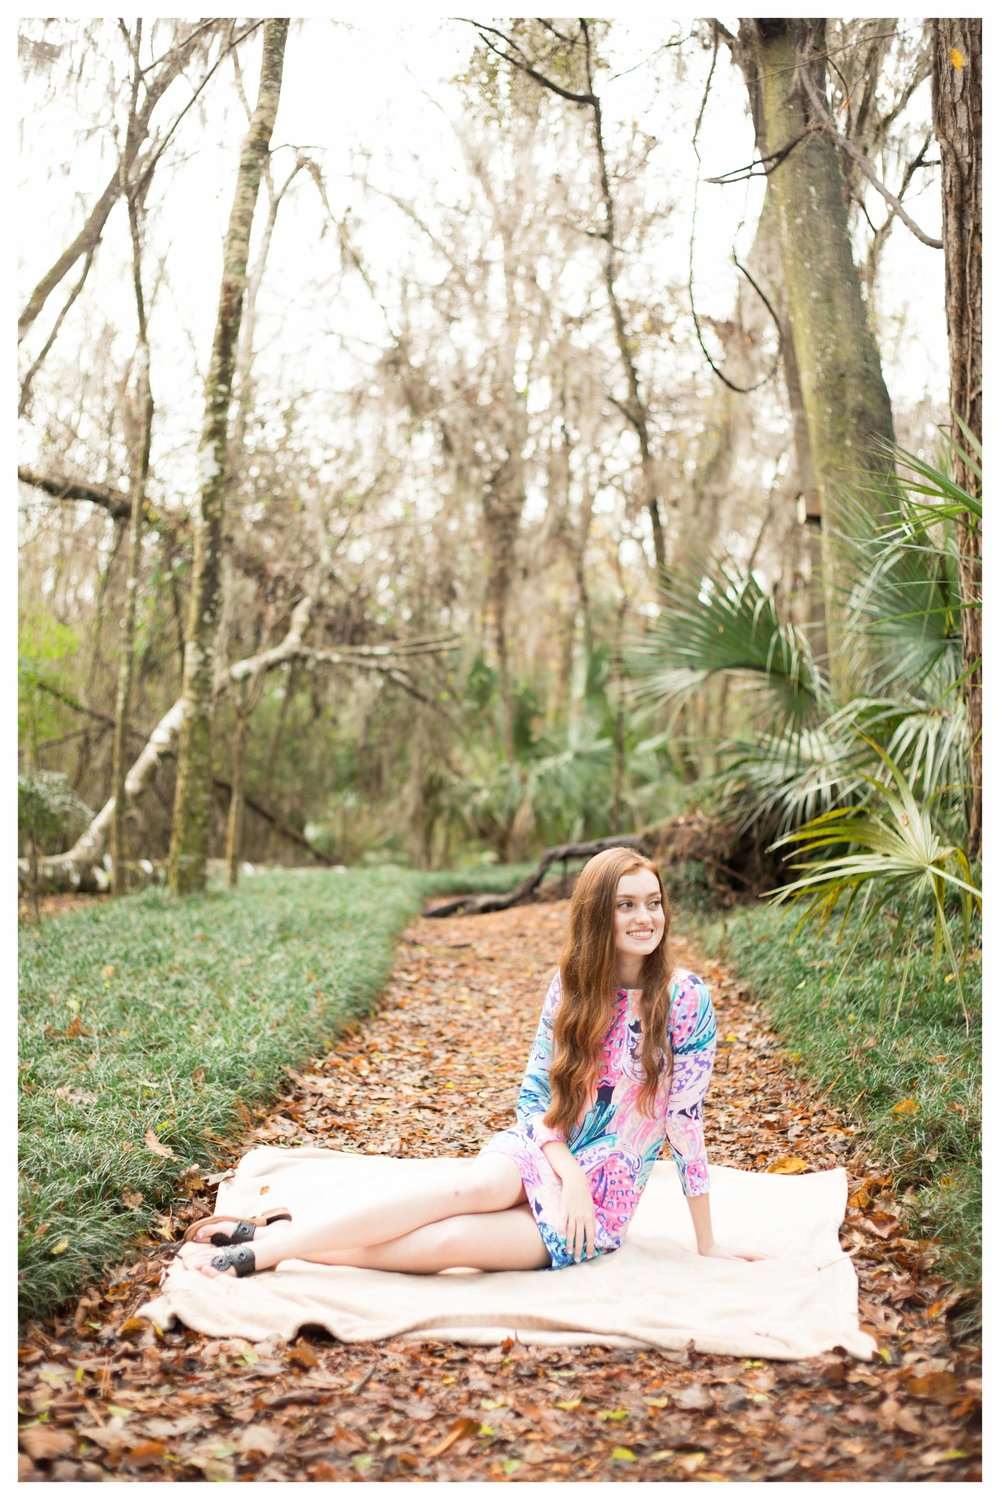 lillie_senior_2018_blog-11.jpg